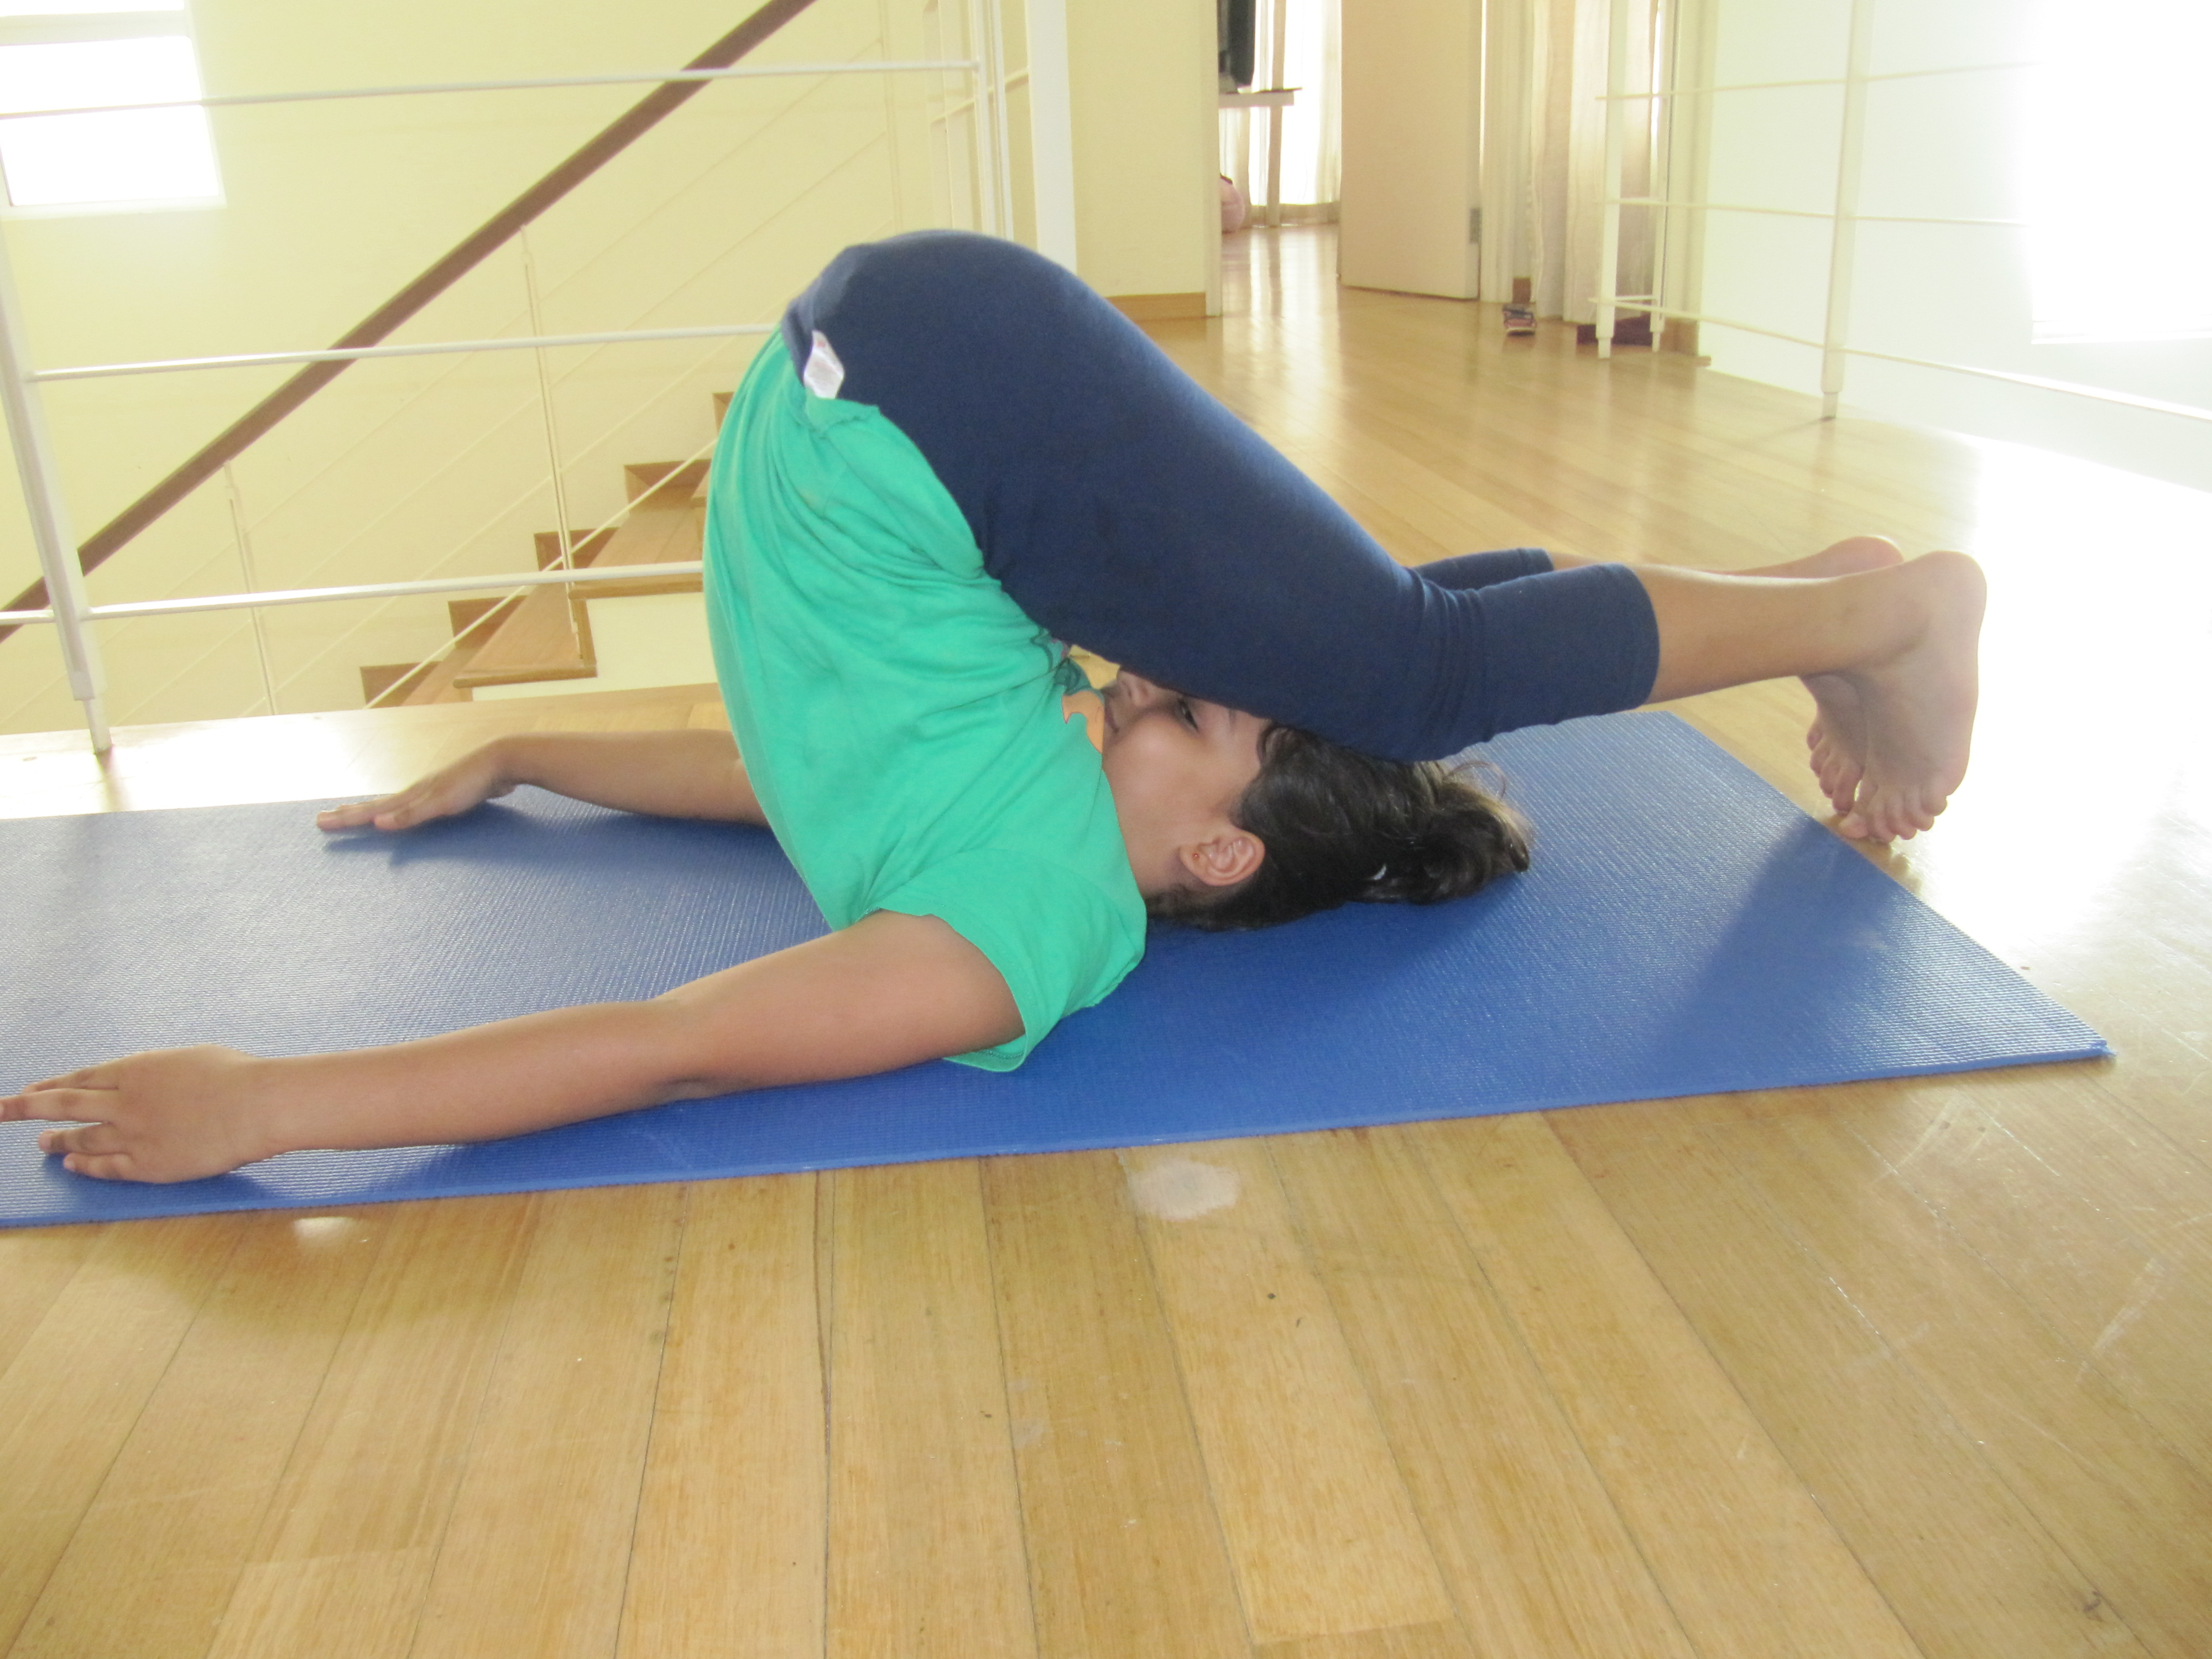 Yoga Poses - Plow Pose